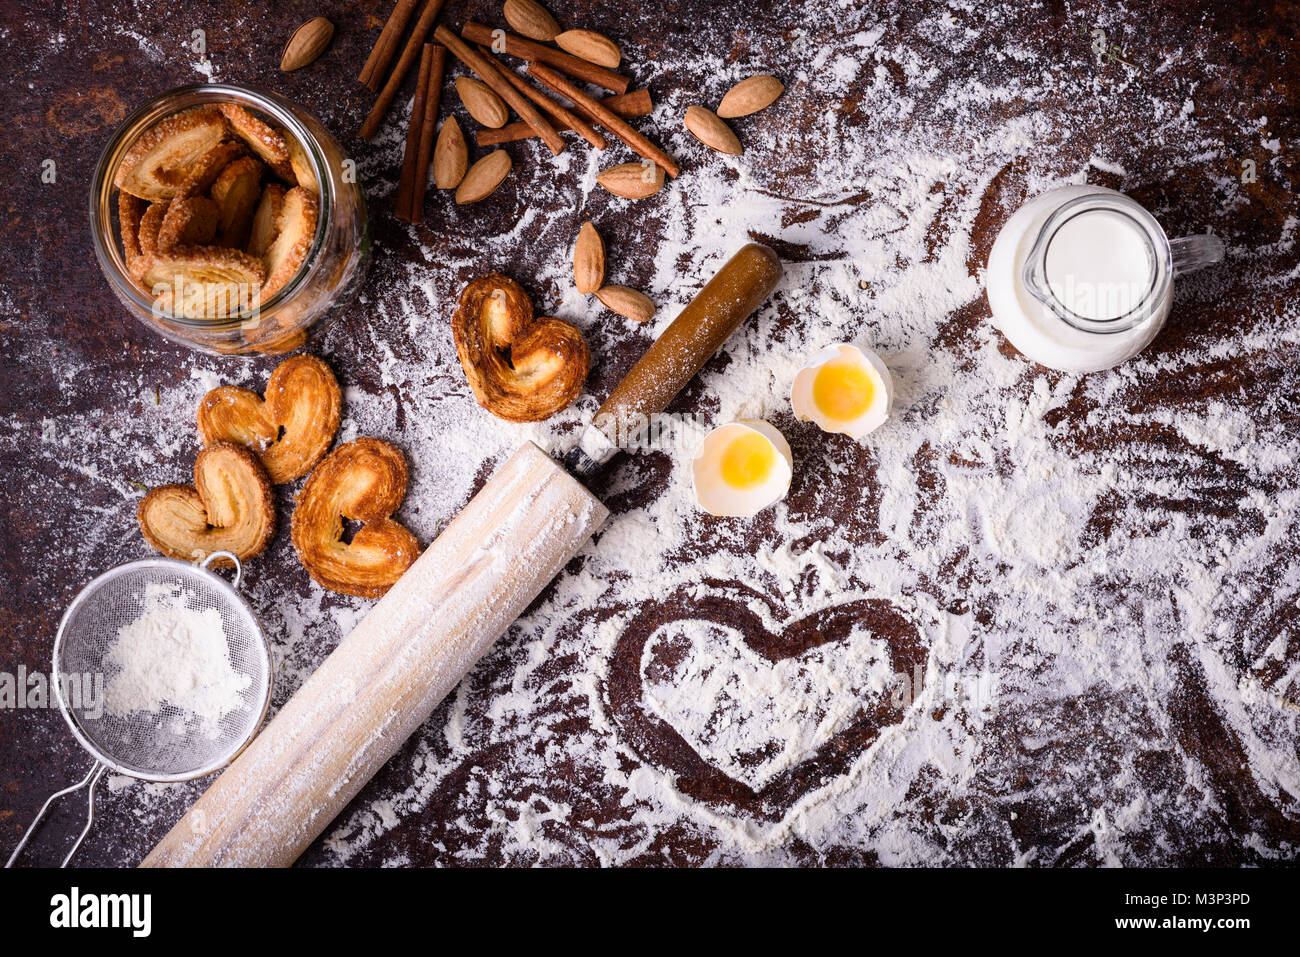 top view of tasty homemade cookies and ingredients on table top  - Stock Image